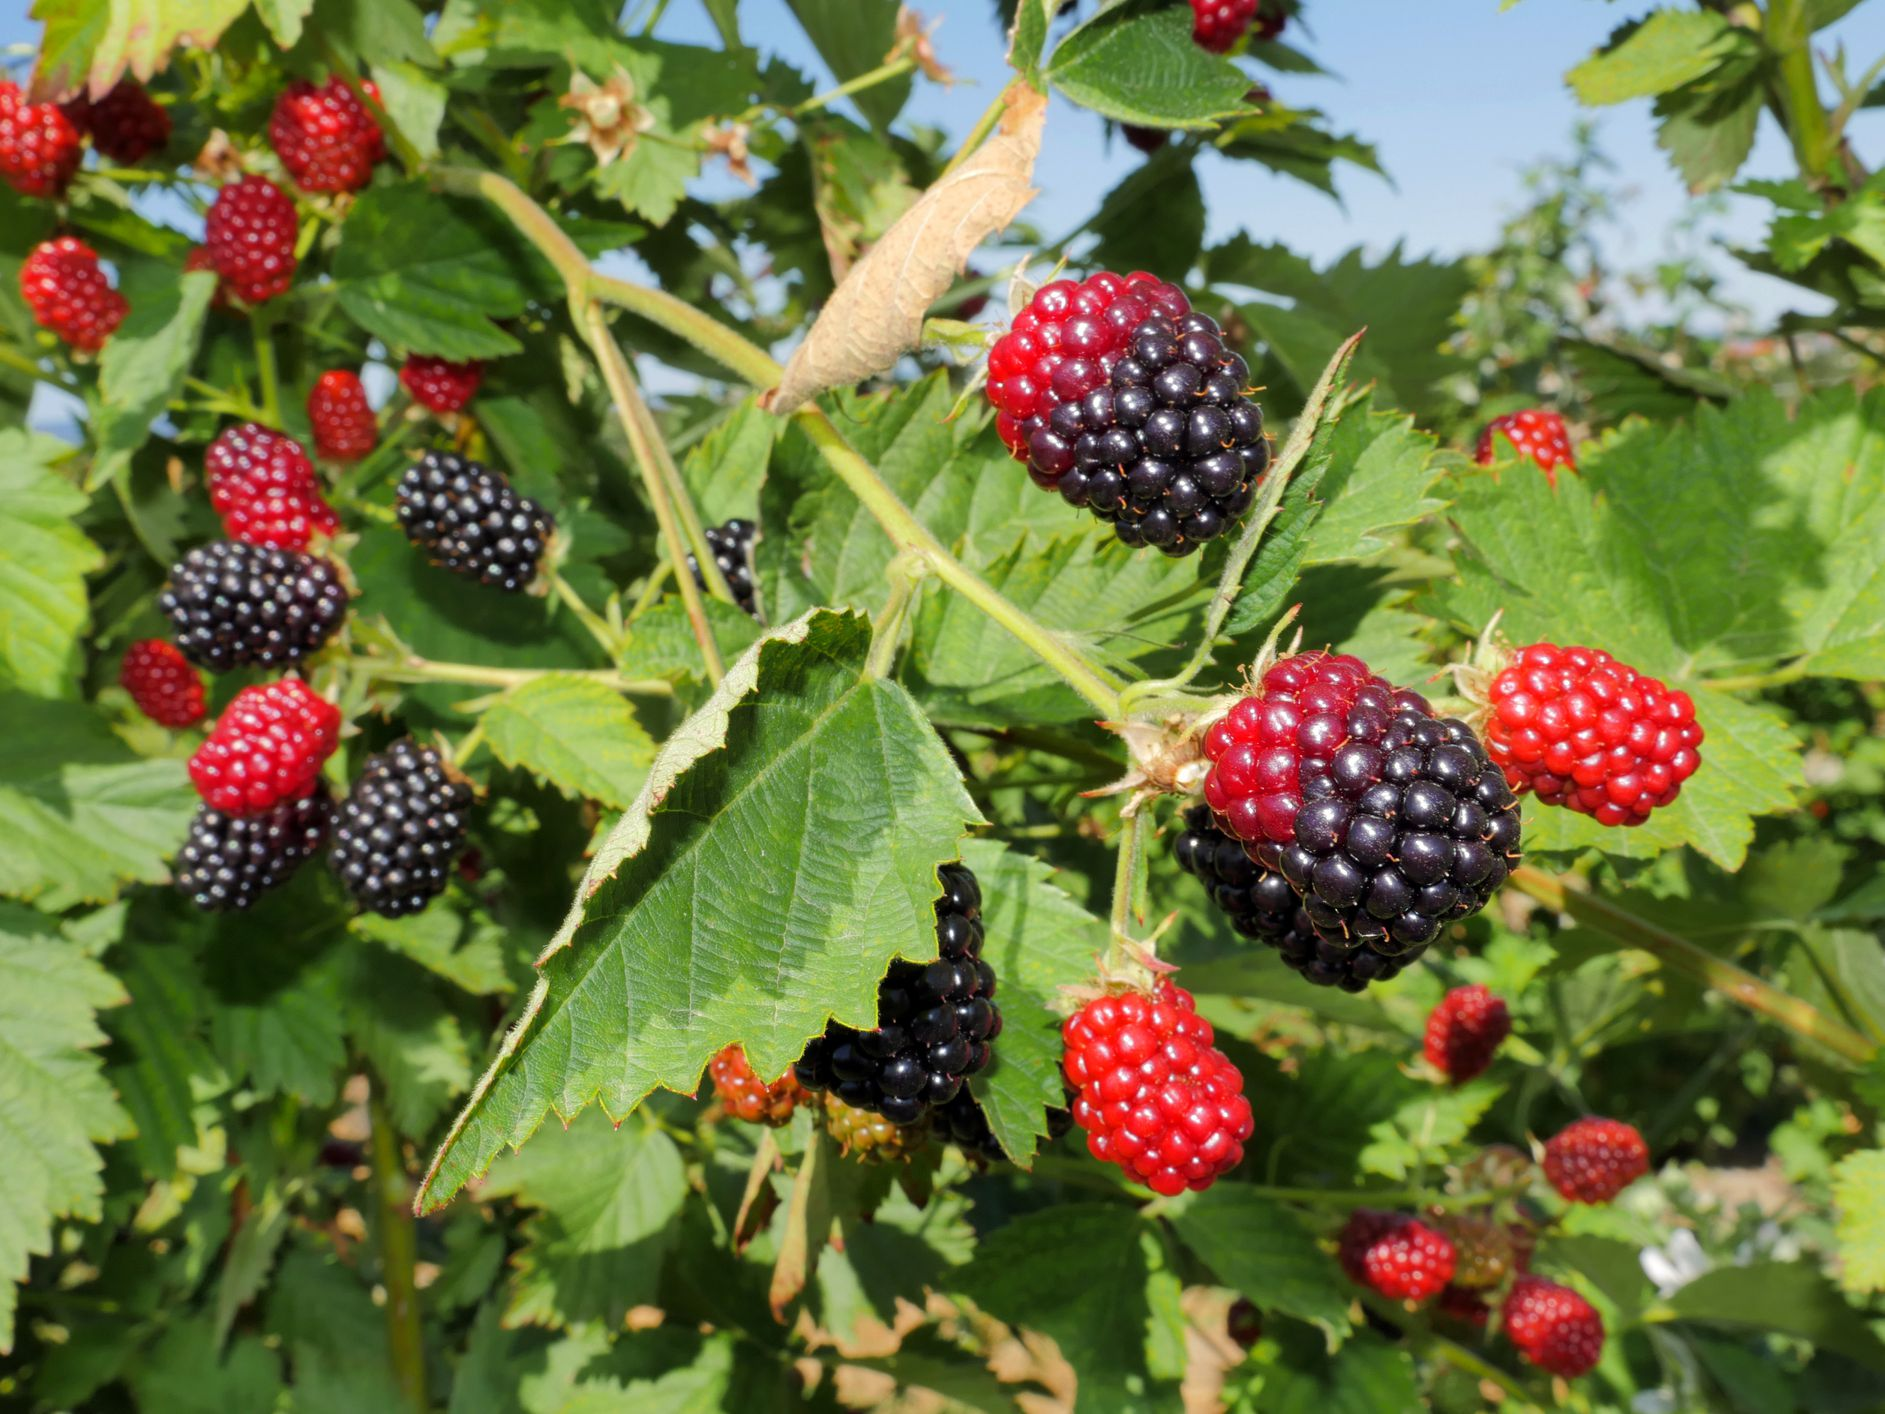 How To Grow And Care For Blackberries